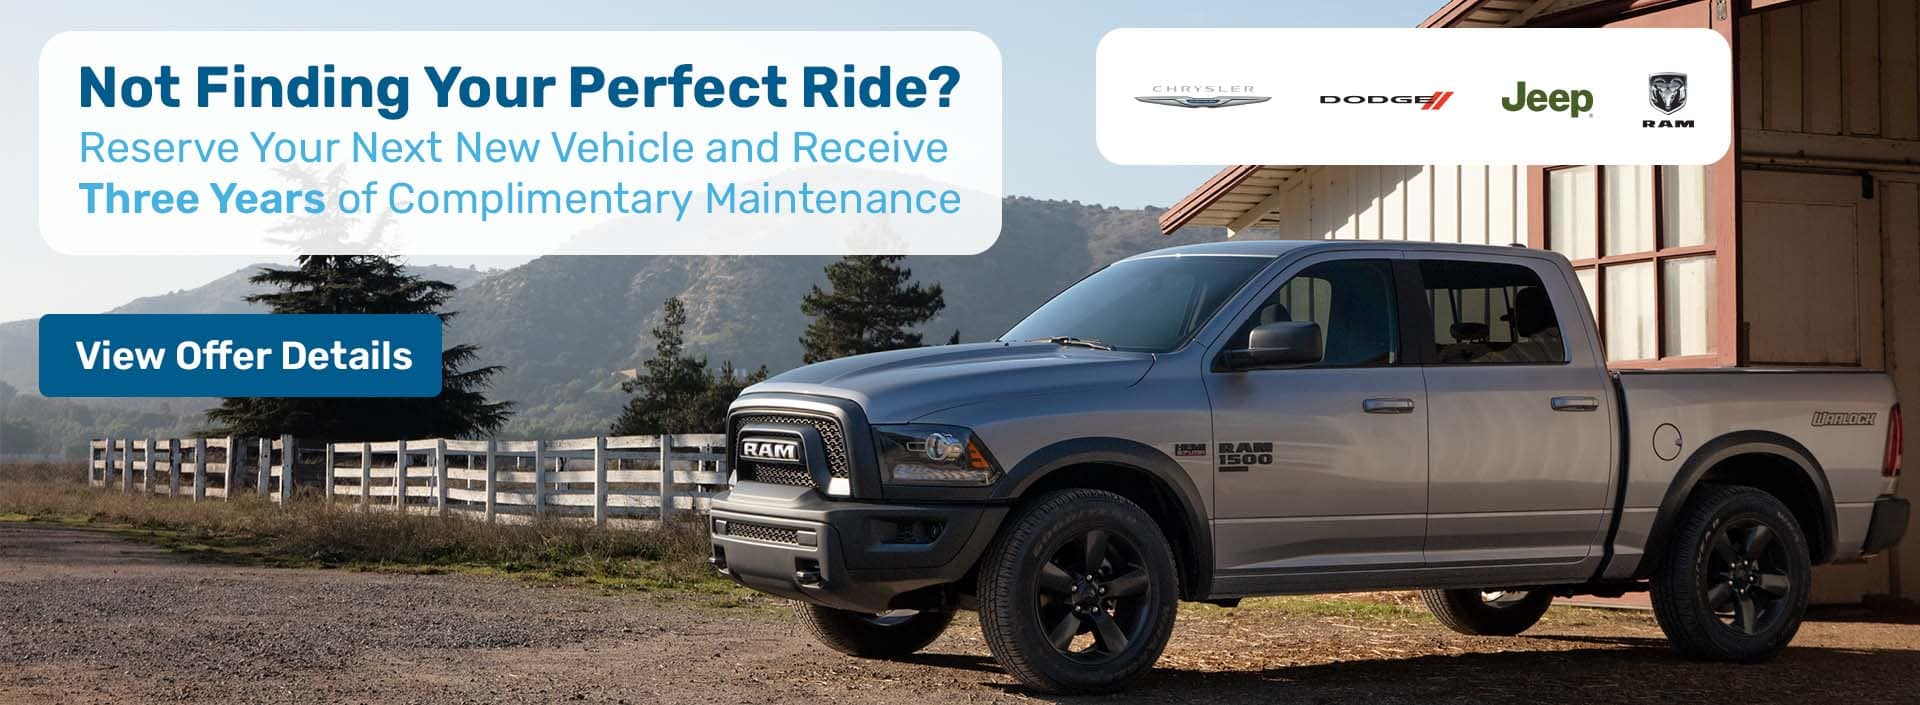 Reserve Your Next Chrysler, Dodge Jeep or RAM and Receive Three Years of Complimentary Maintenance